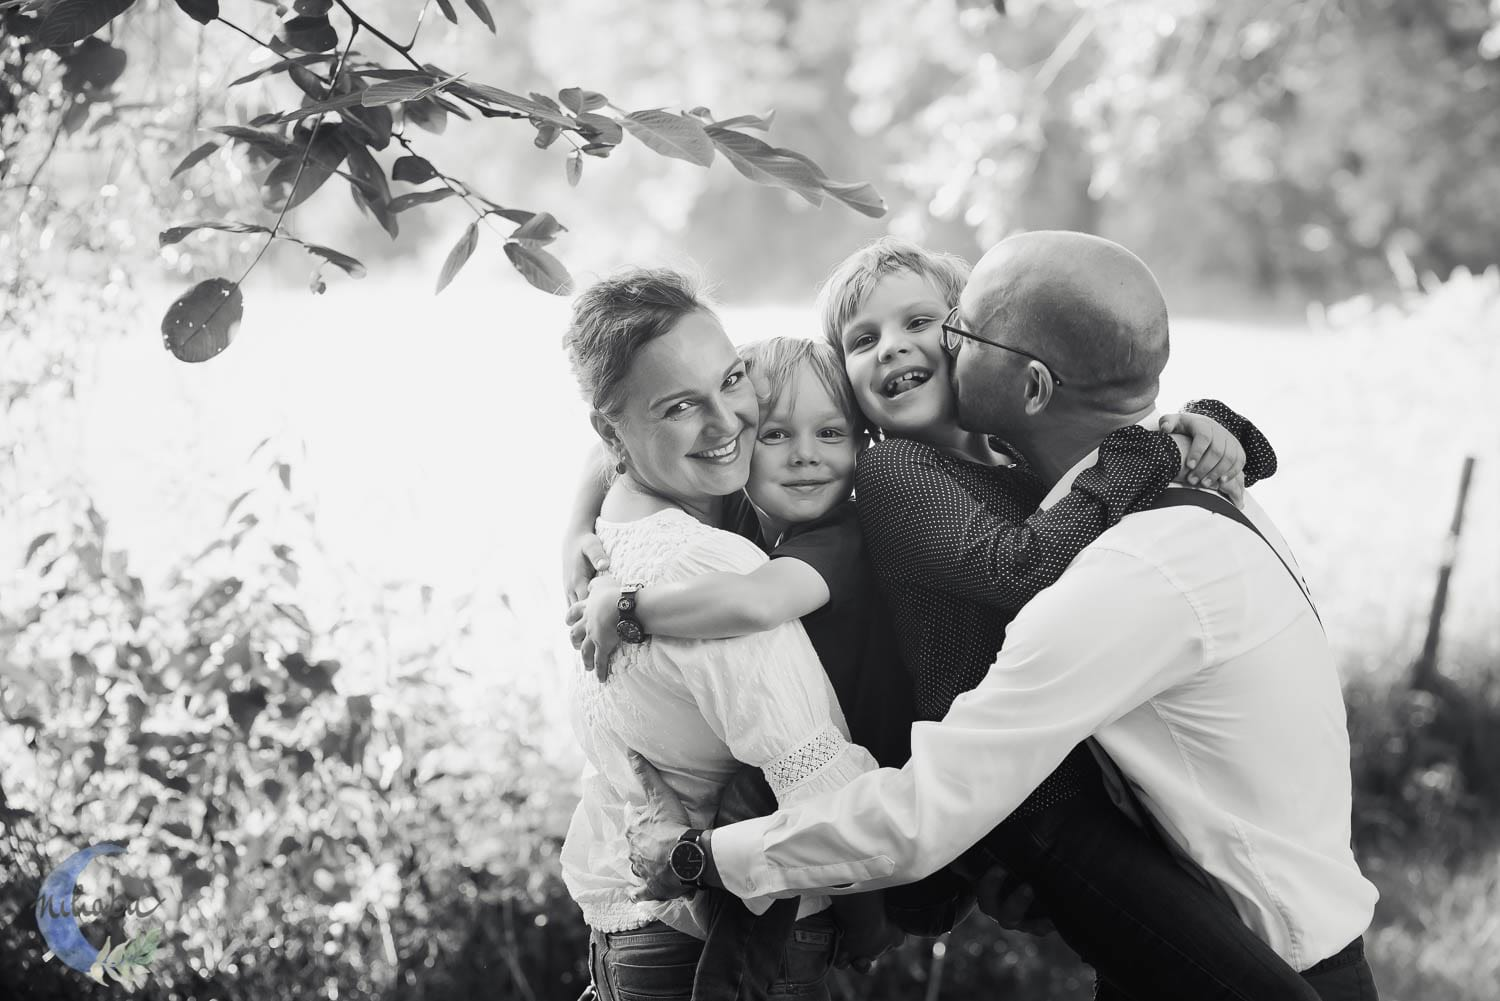 Familie-ist-wo-Kinder-sind-Fotoshooting-01